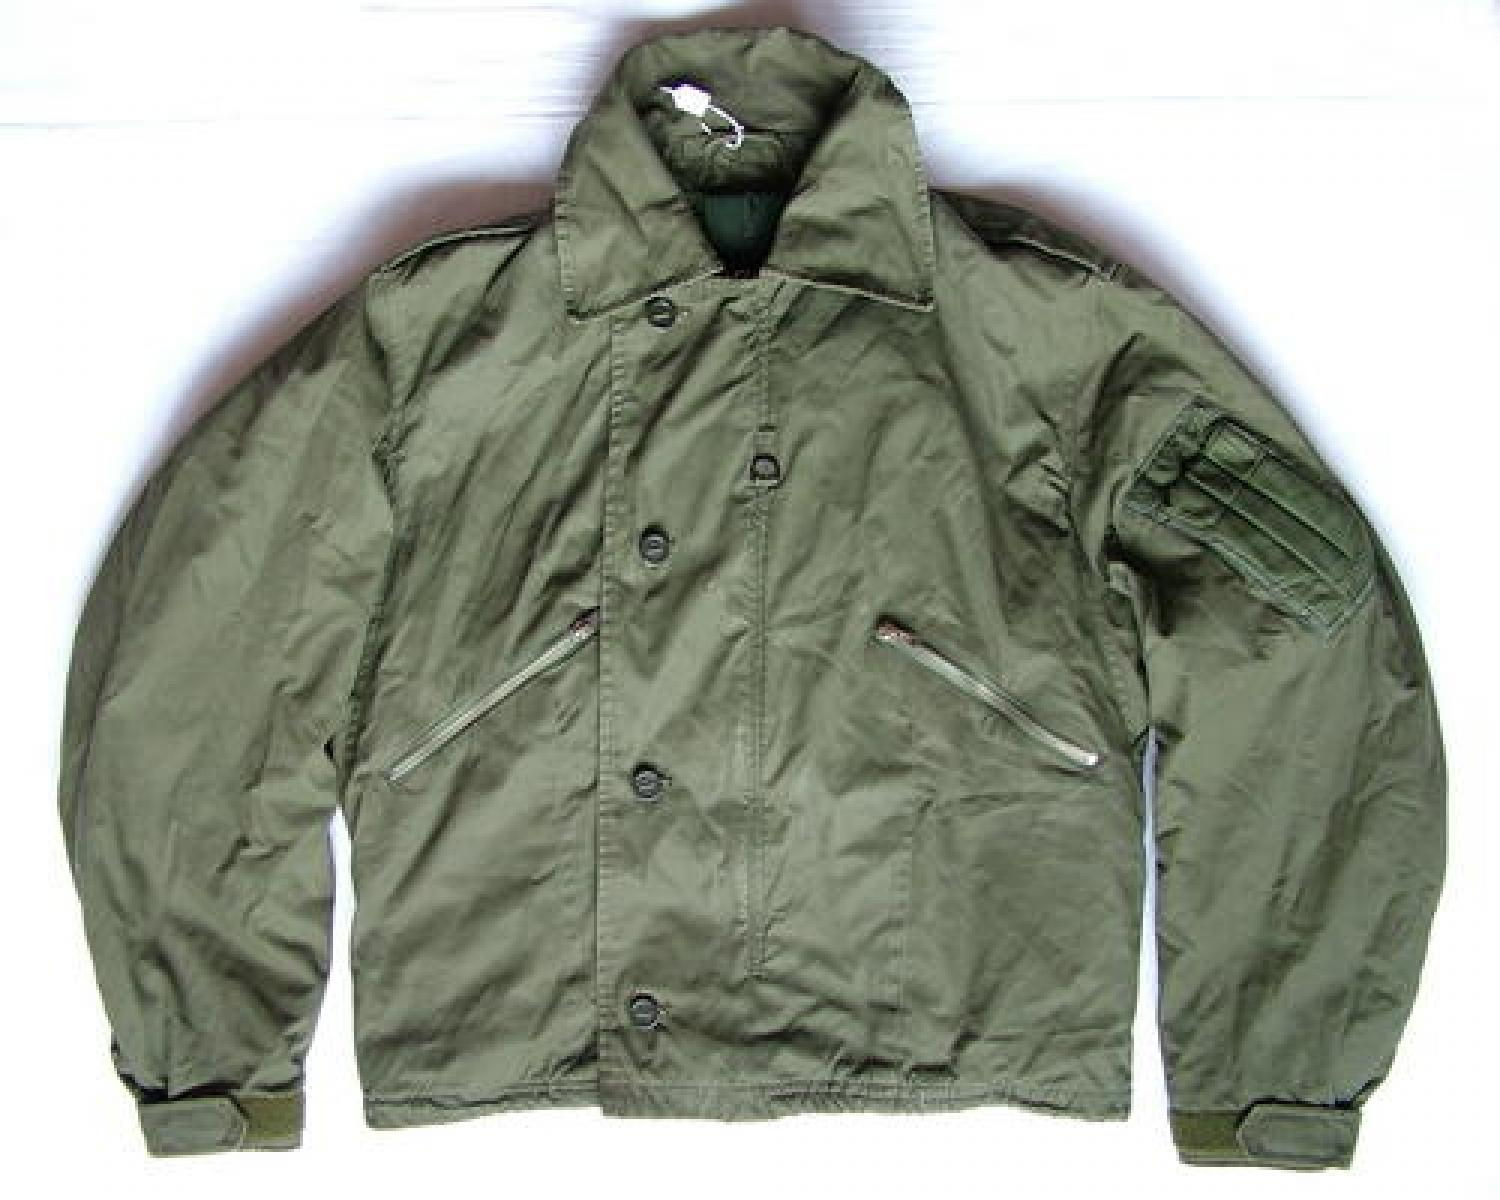 RAF Suit Aircrew, Cold Weather Mk 3 Jacket